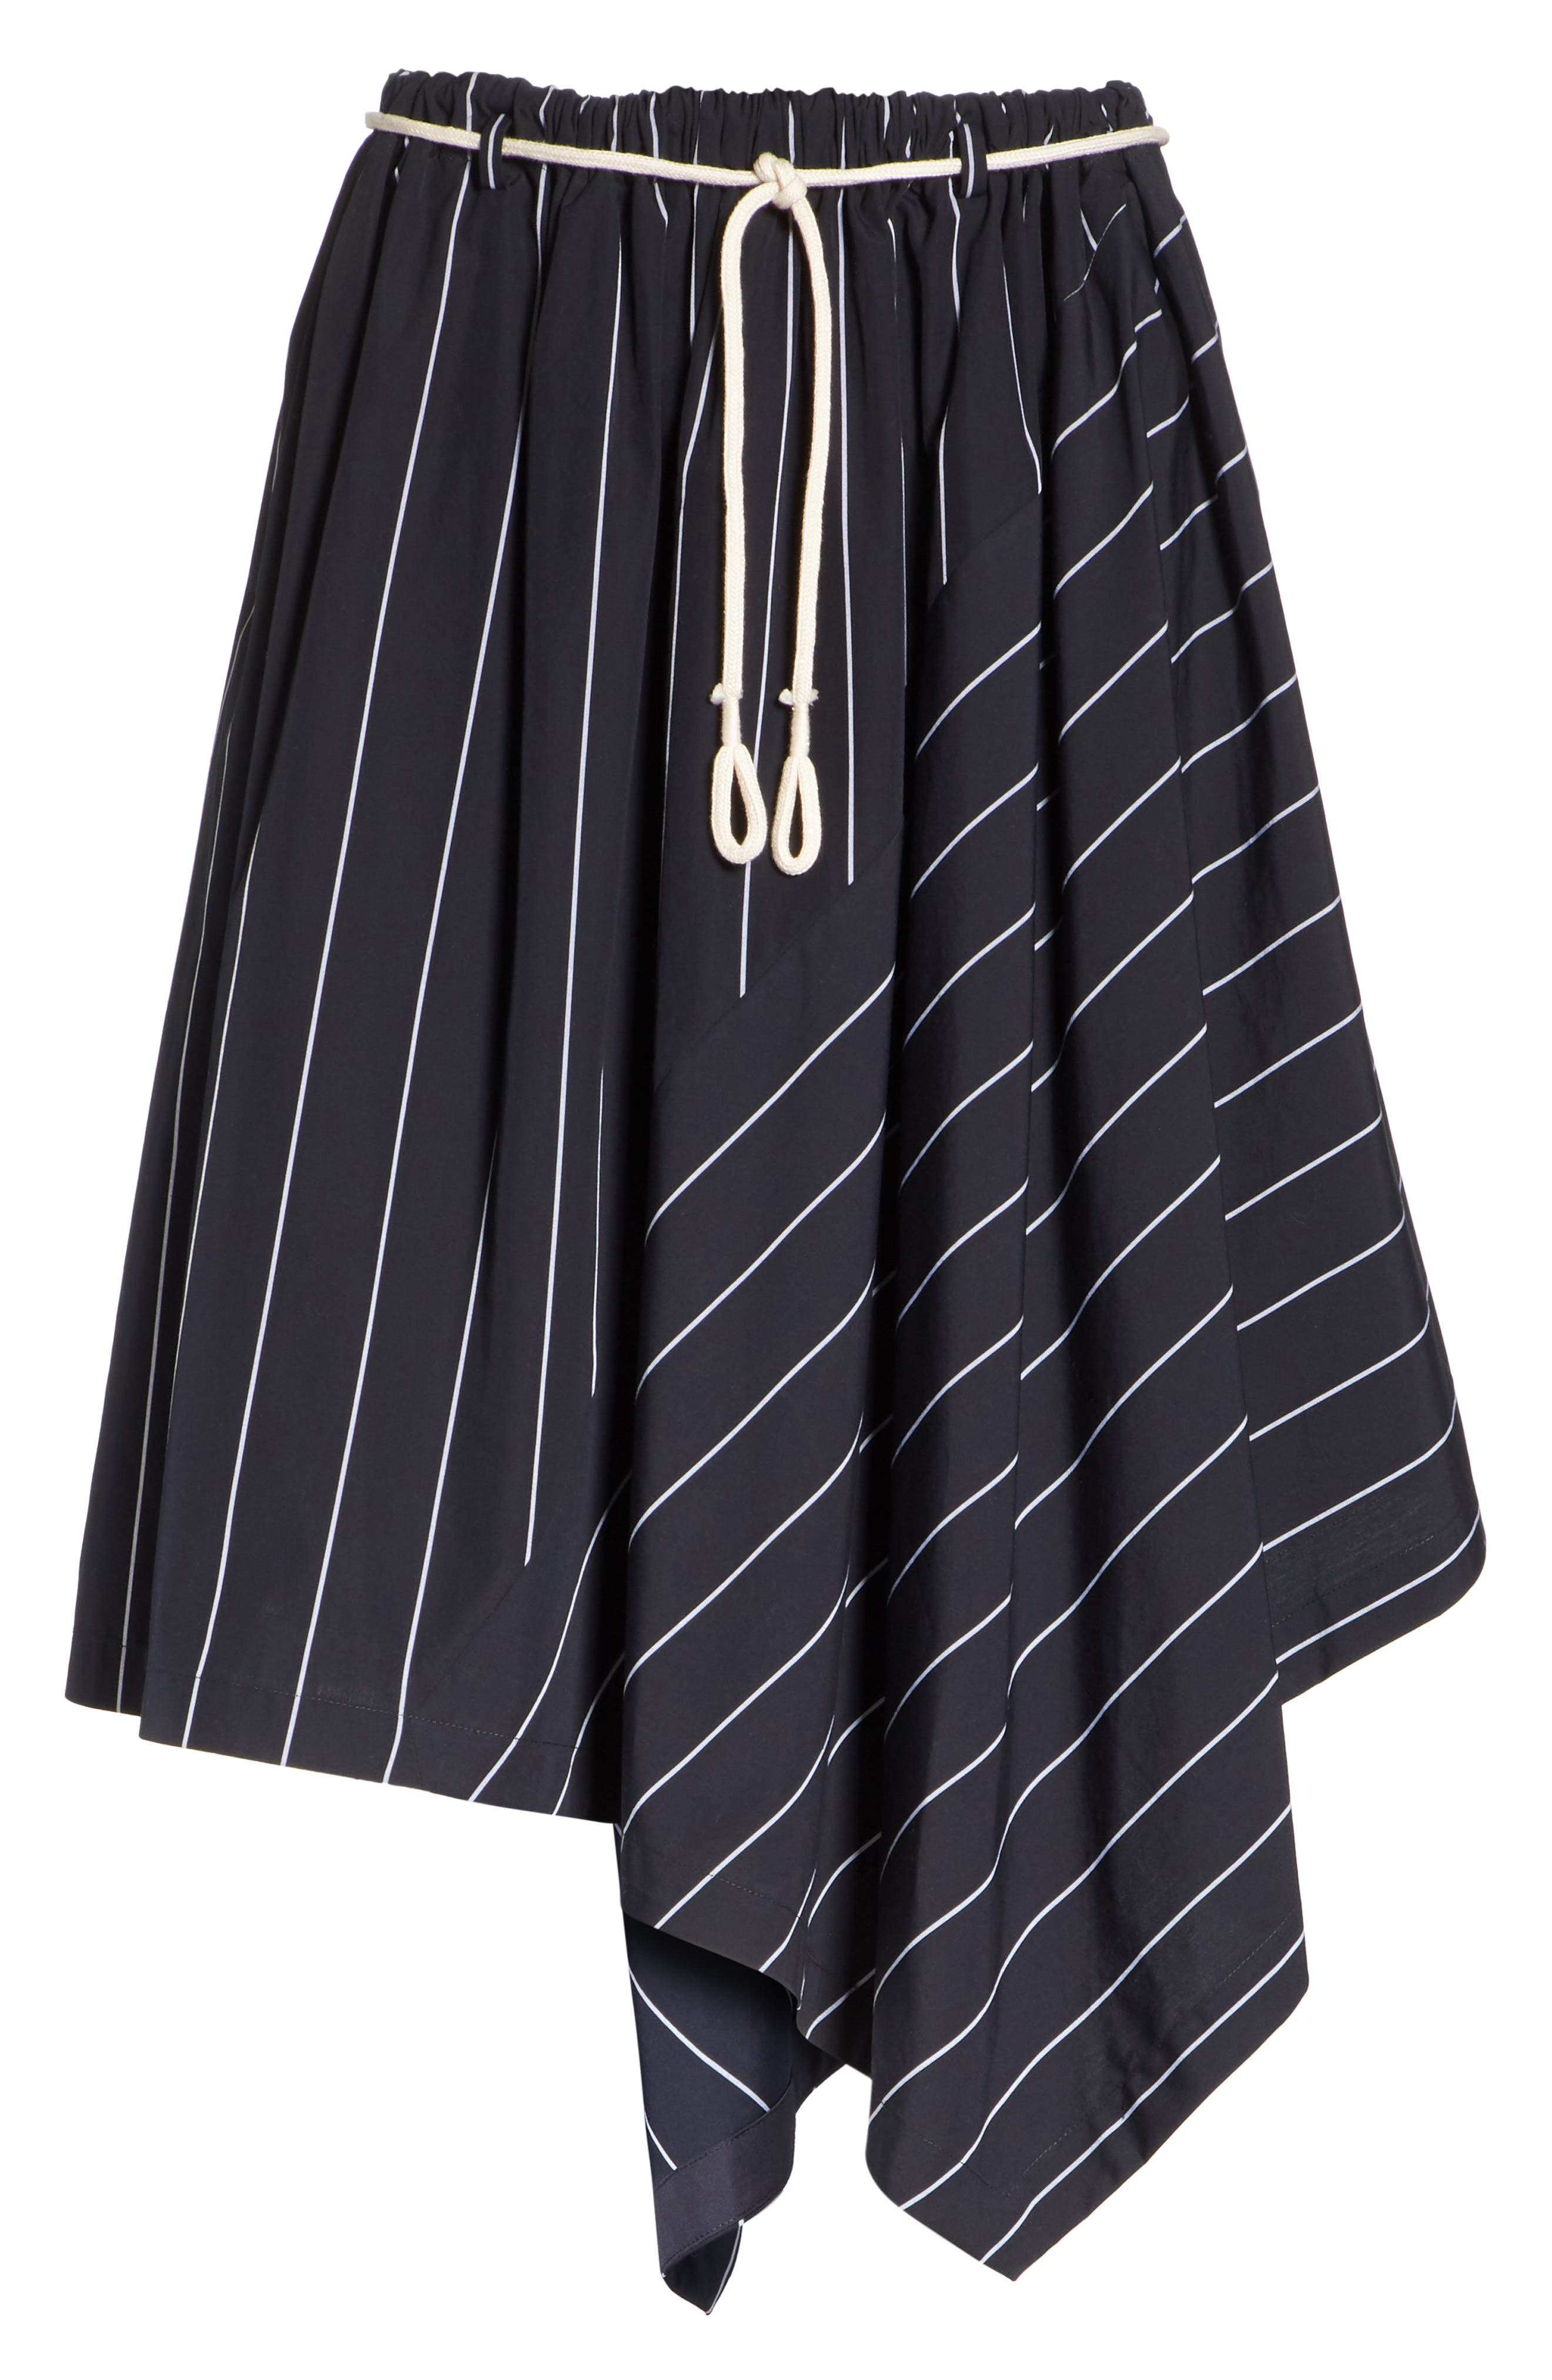 Skinny Stripe Asymmetrical Cotton Skirt,                             Alternate thumbnail 6, color,                             Coastal/ Optic White